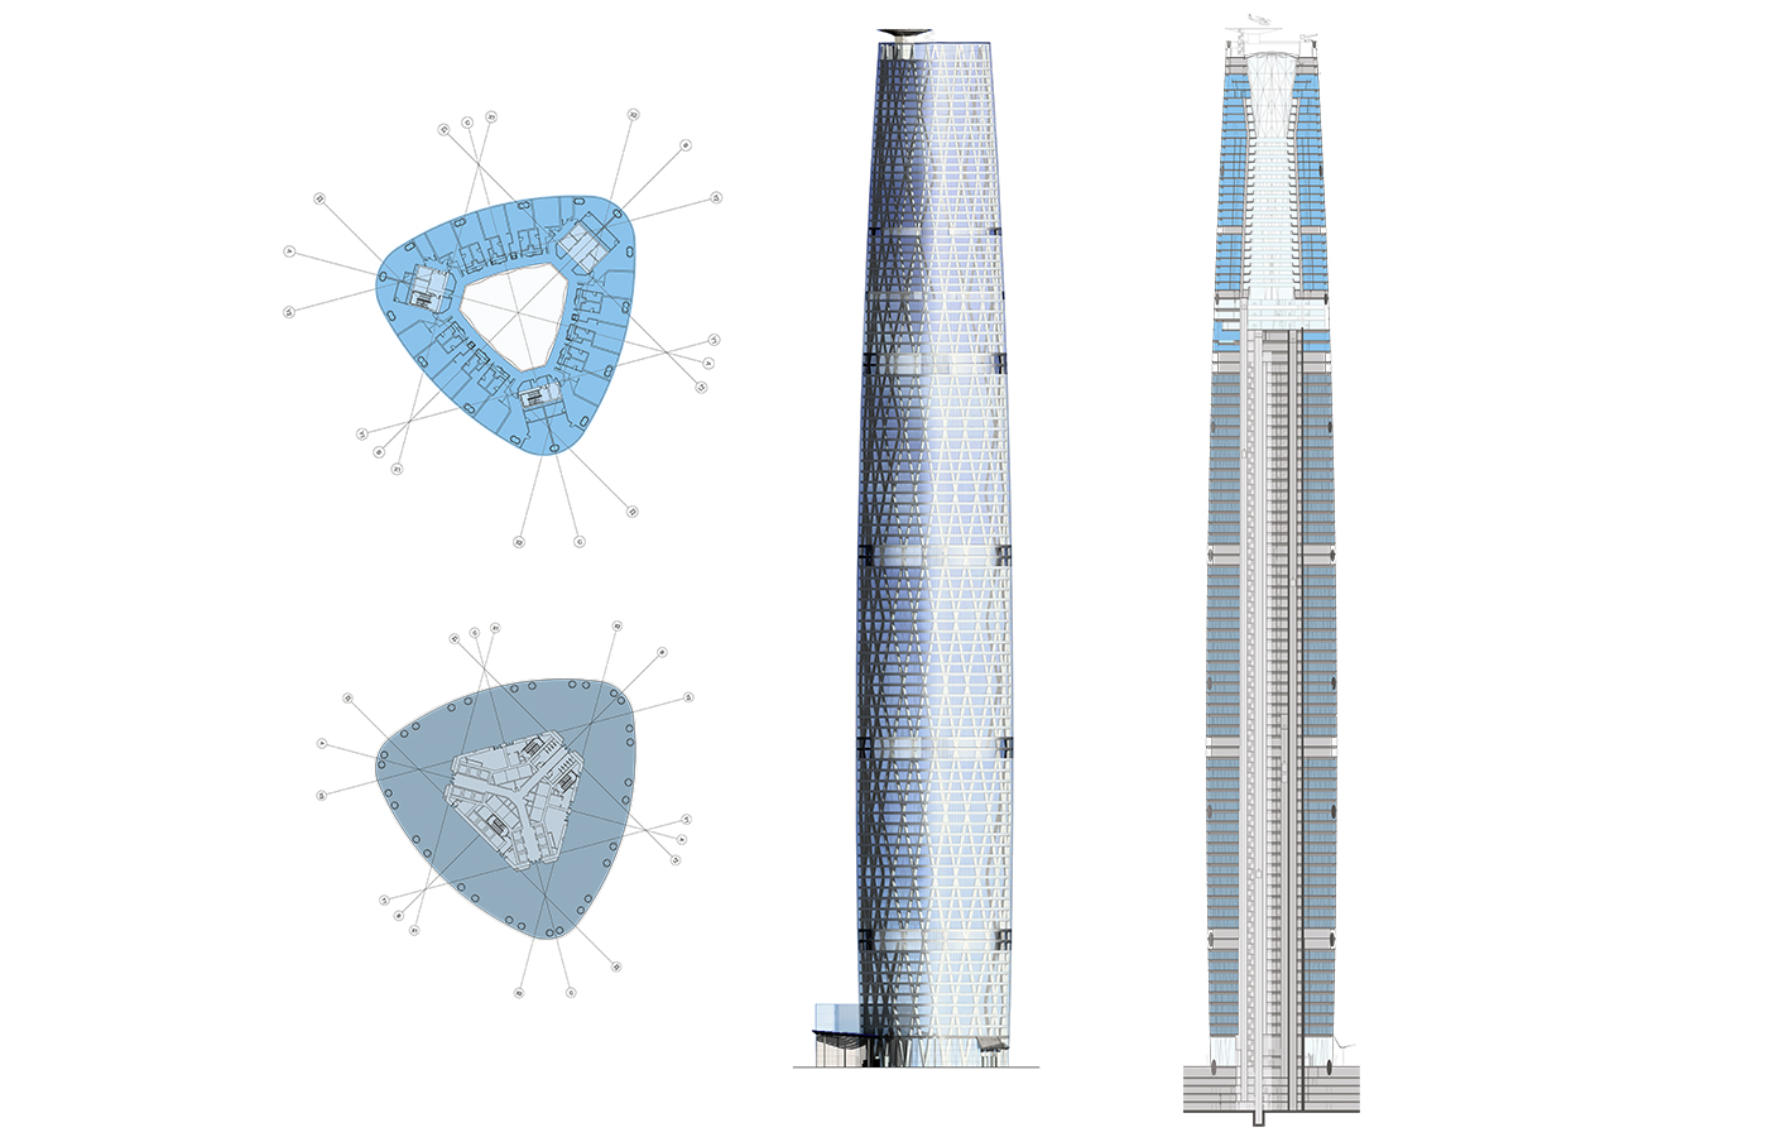 guangzhou international finance center wilkinsoneyre the tower s slender crystalline form acts as a landmark to guangzhou zhujiang new town s main axis linking the commercial district in the north with the